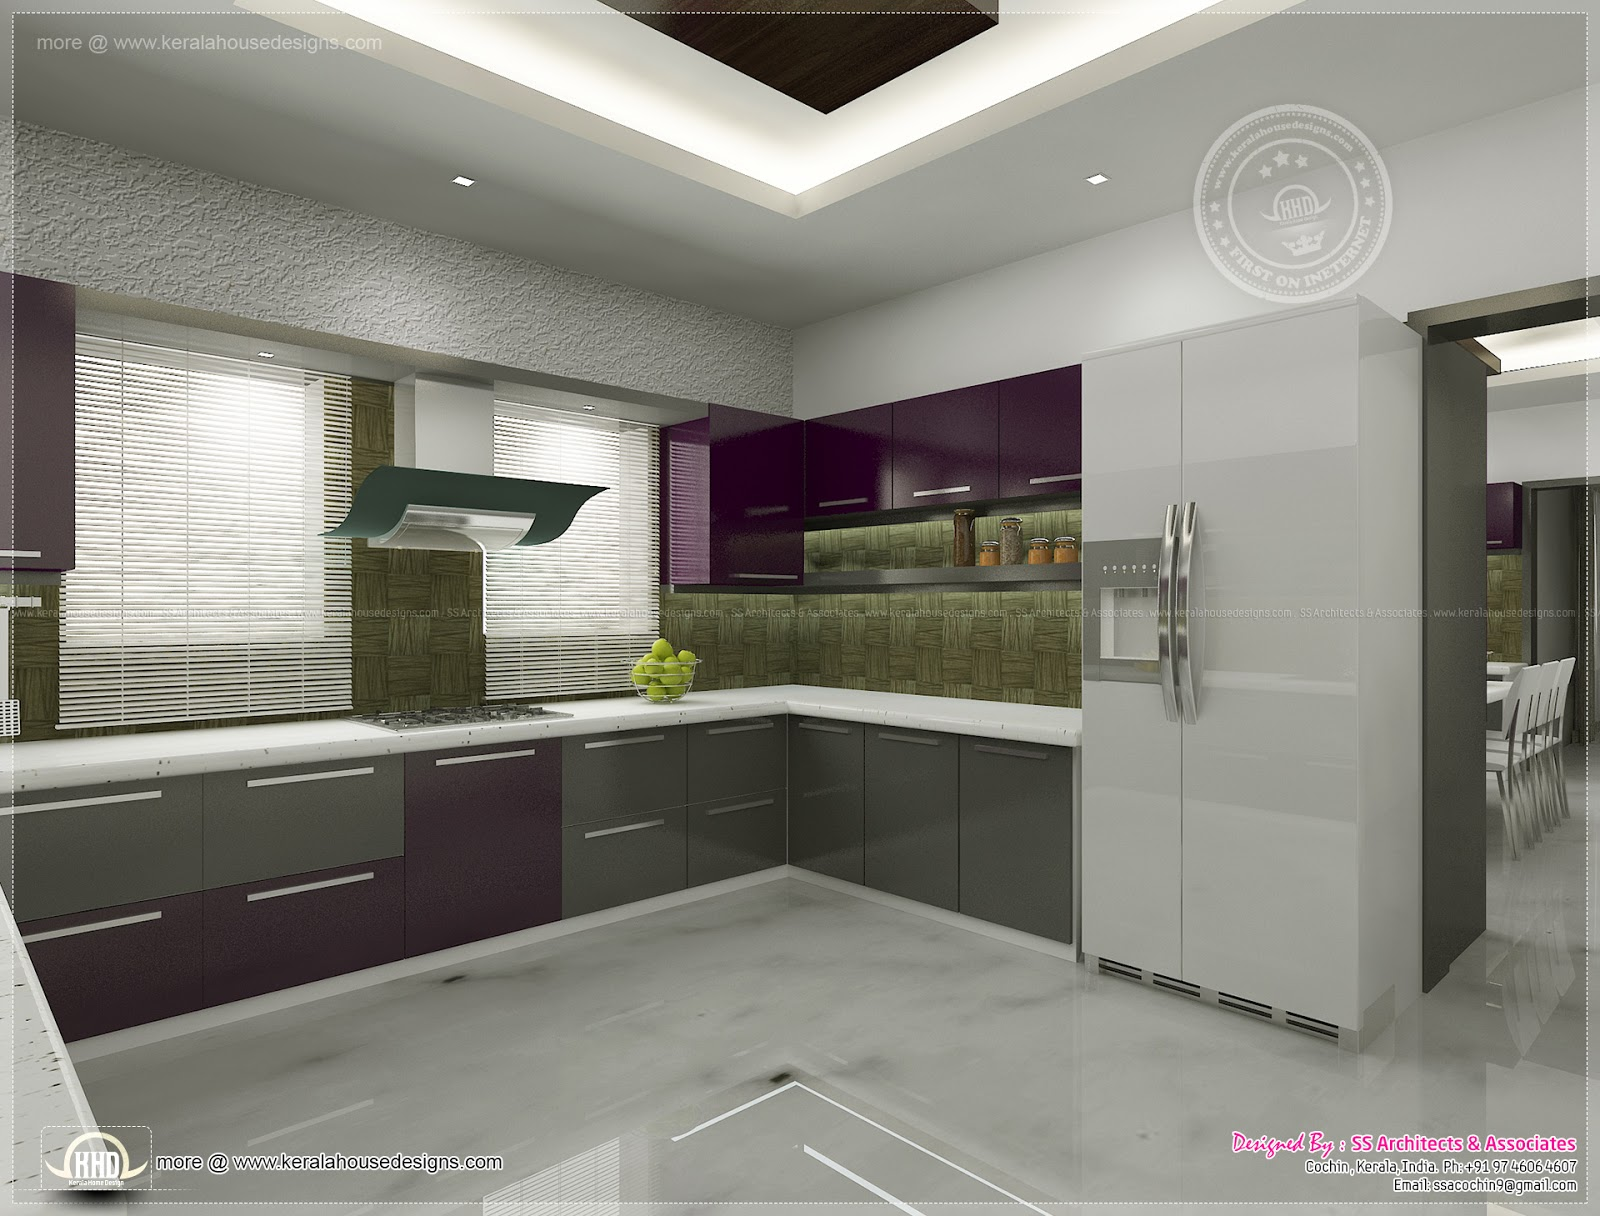 kitchen interiors designs kitchen interior views by ss architects cochin kerala home design and floor plans 5726